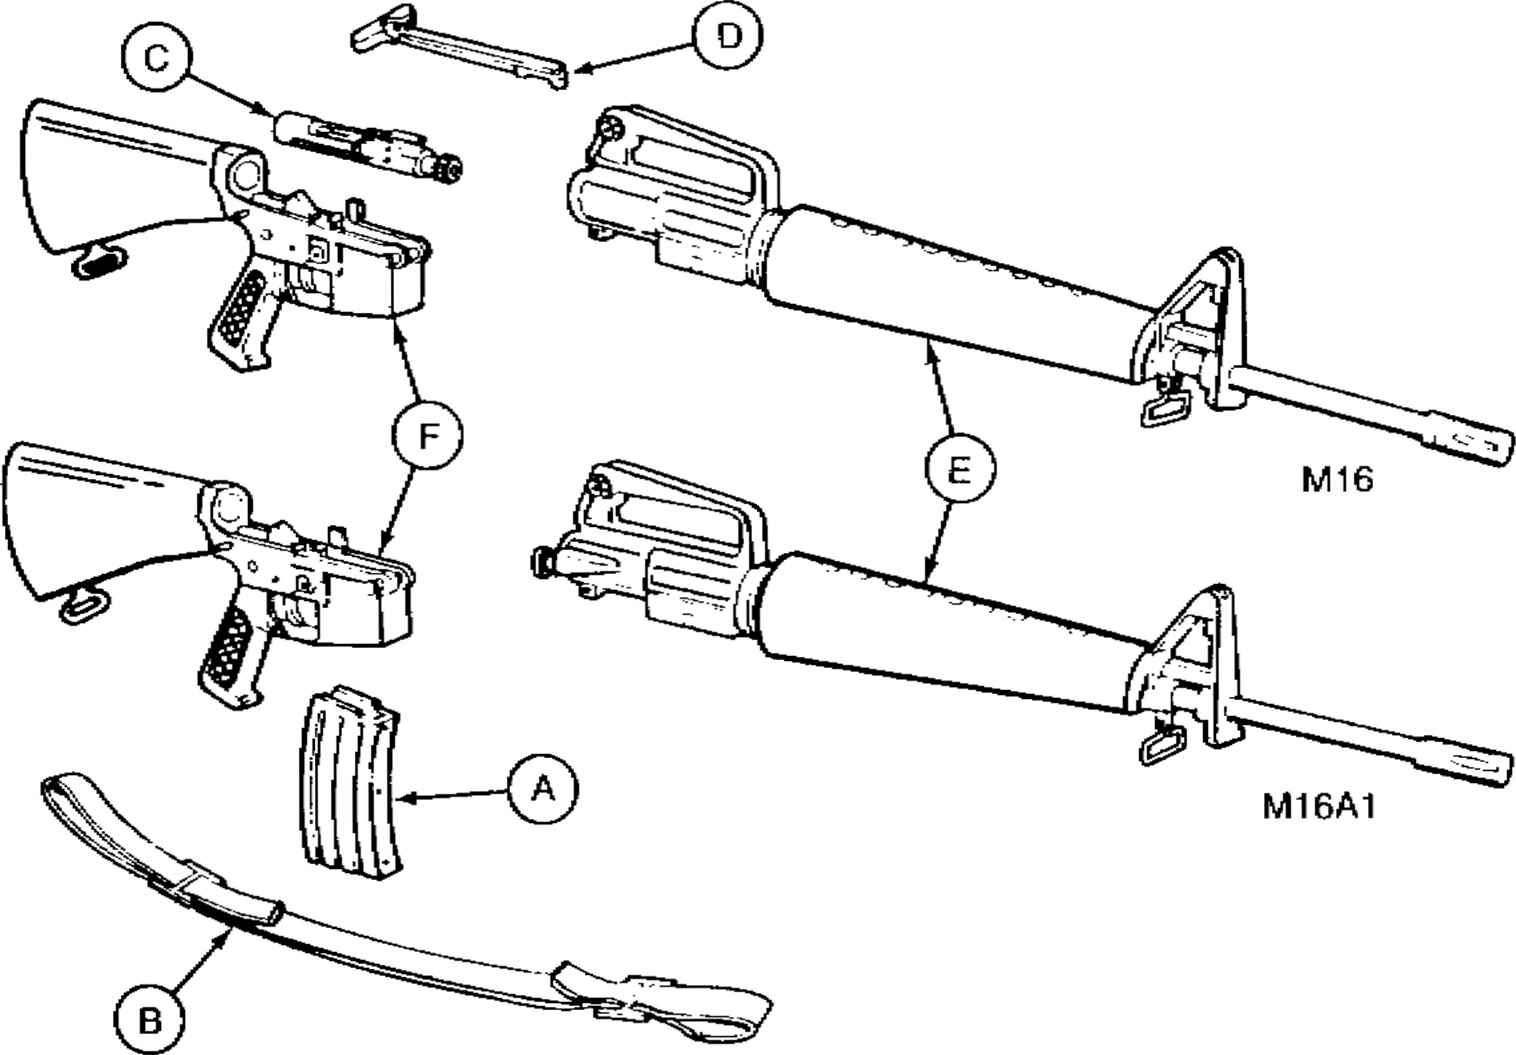 m16 exploded diagram ammeter wiring car m16a1 worksheet and parts of rifle cal 5 56mm rh pinterest com lower